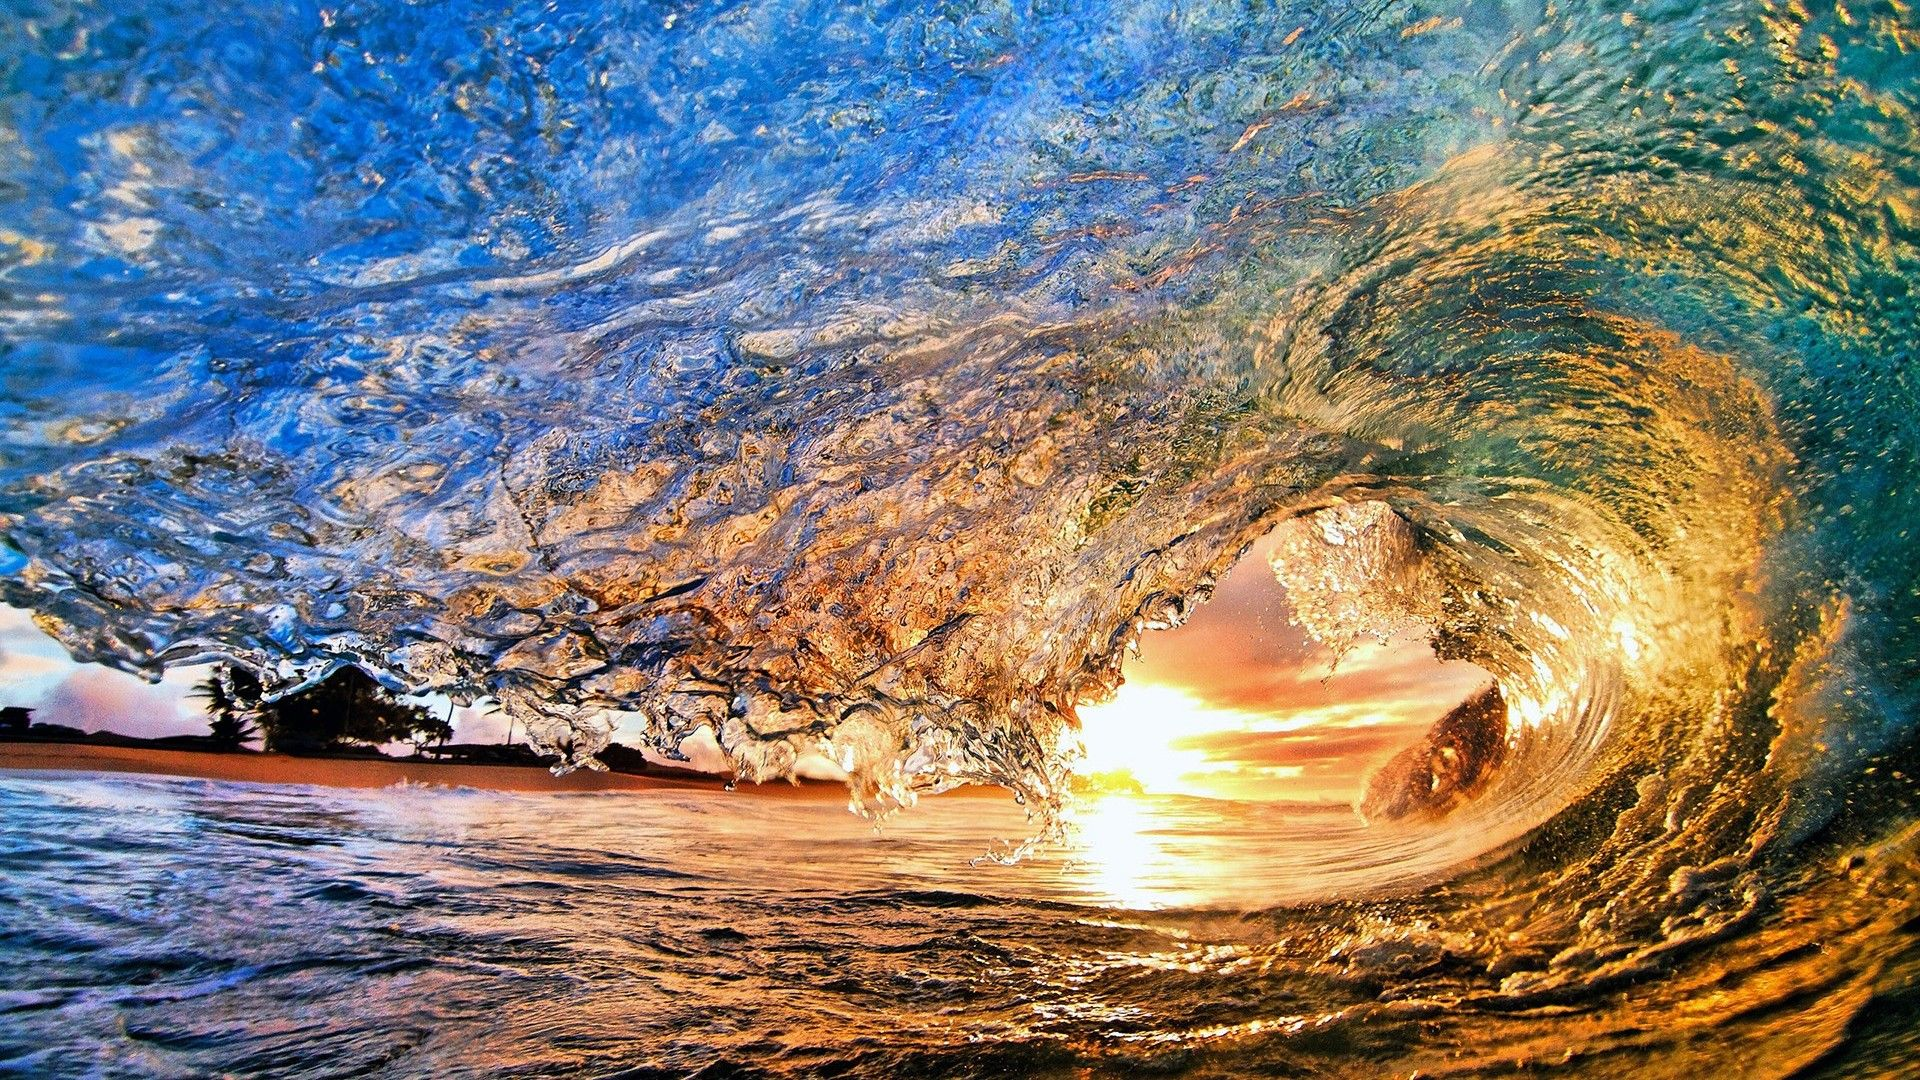 Rapture surfcamps surfing wallpapers hd wallpapers pinterest rapture surfcamps surfing wallpapers voltagebd Choice Image